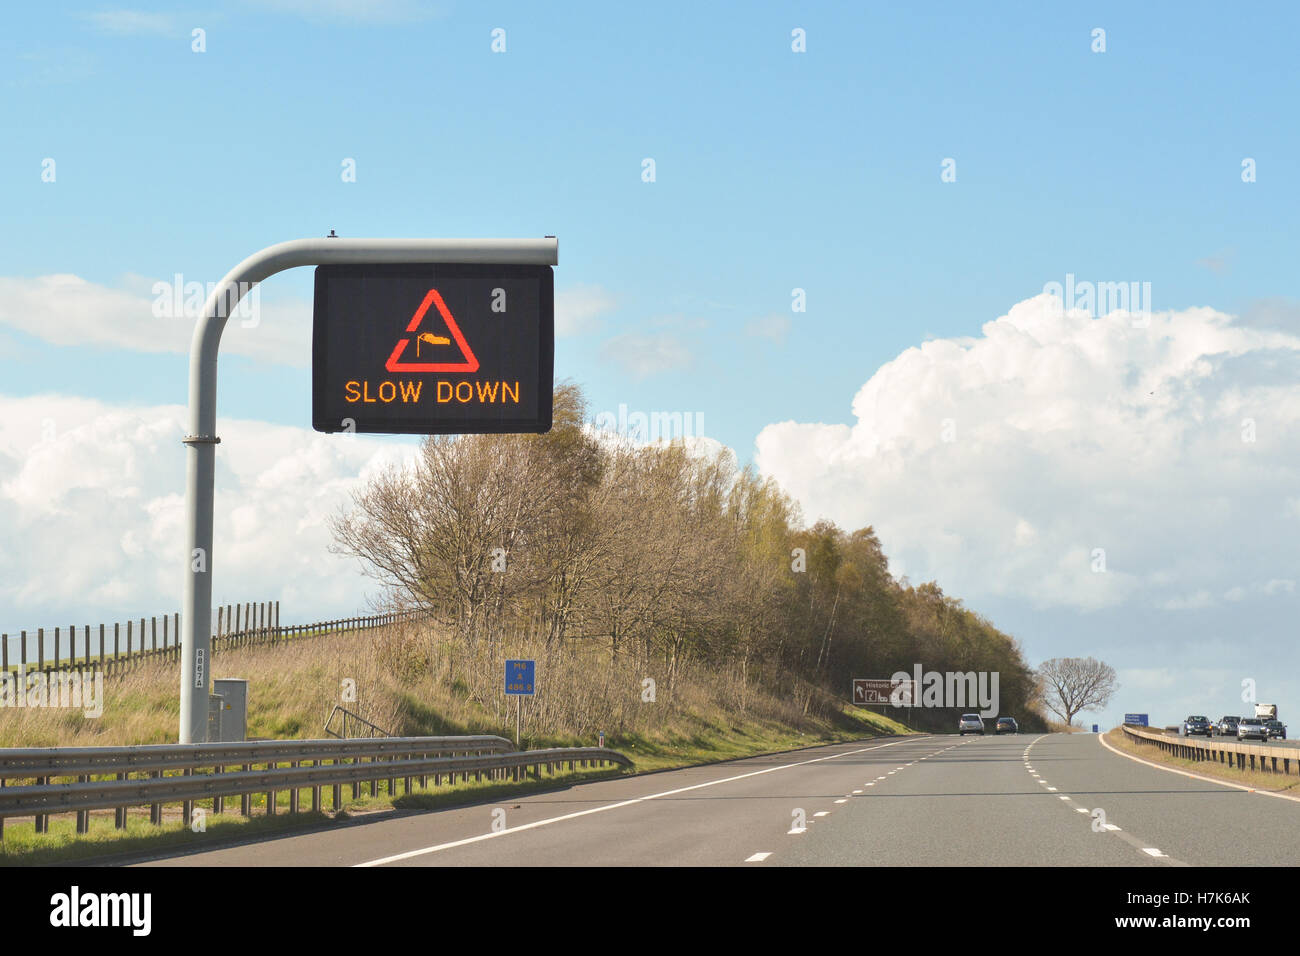 side wind cross wind motorway traffic warning sign - uk - Stock Image